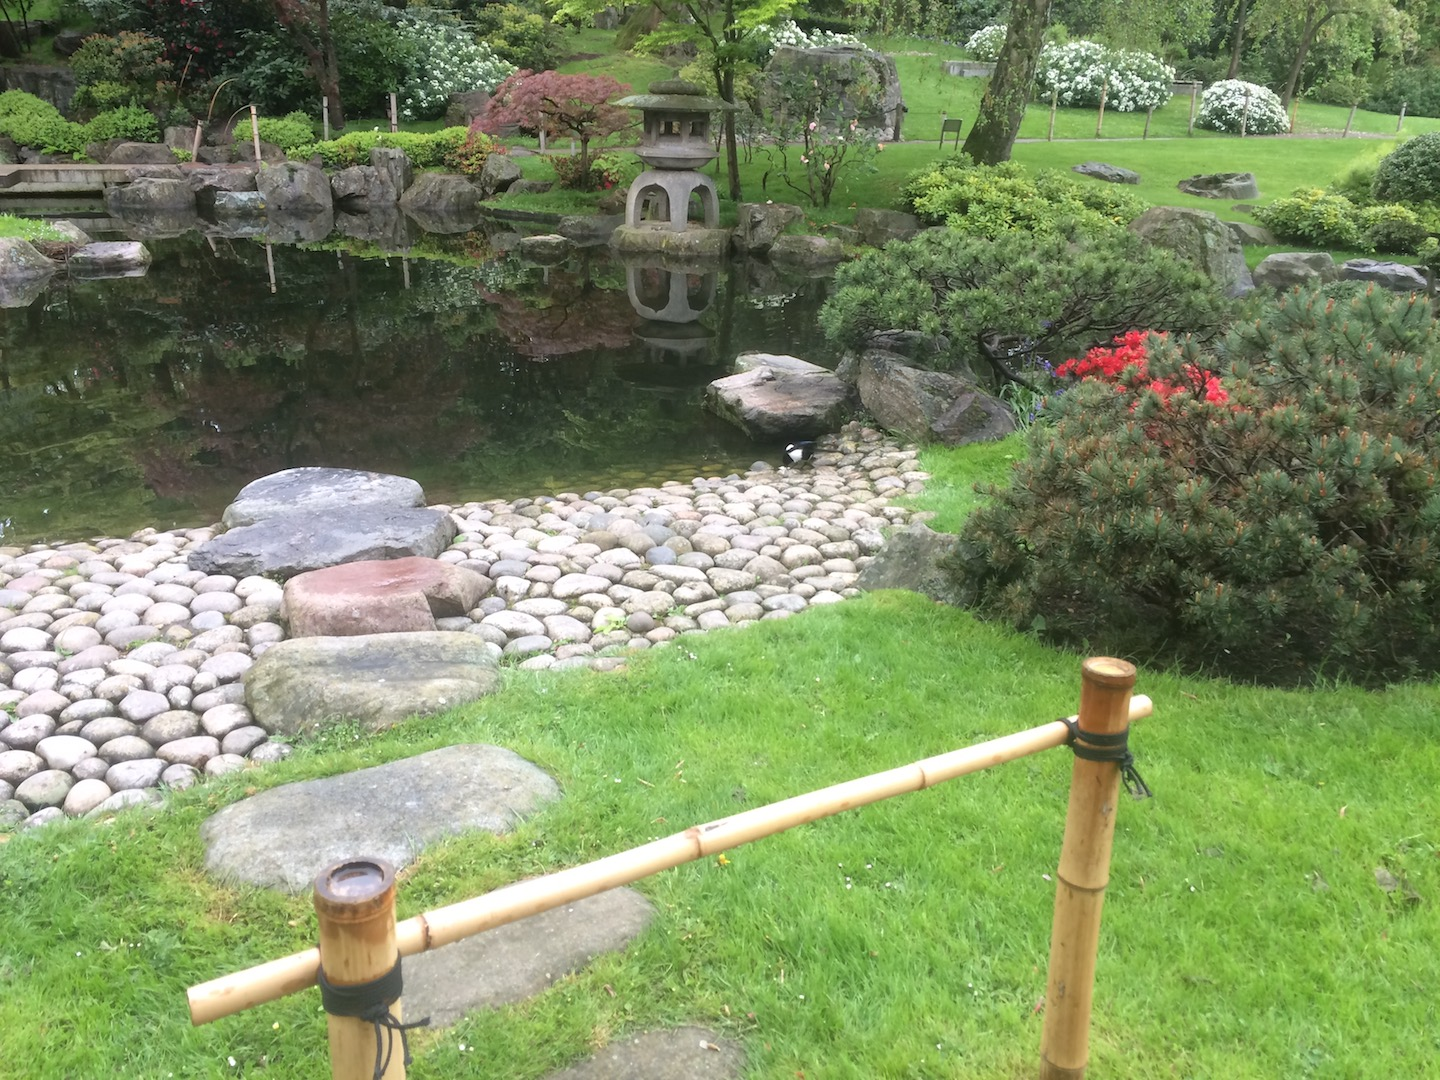 Naturalistic rock pavers with the garden pond shore paved with large round river rocks.